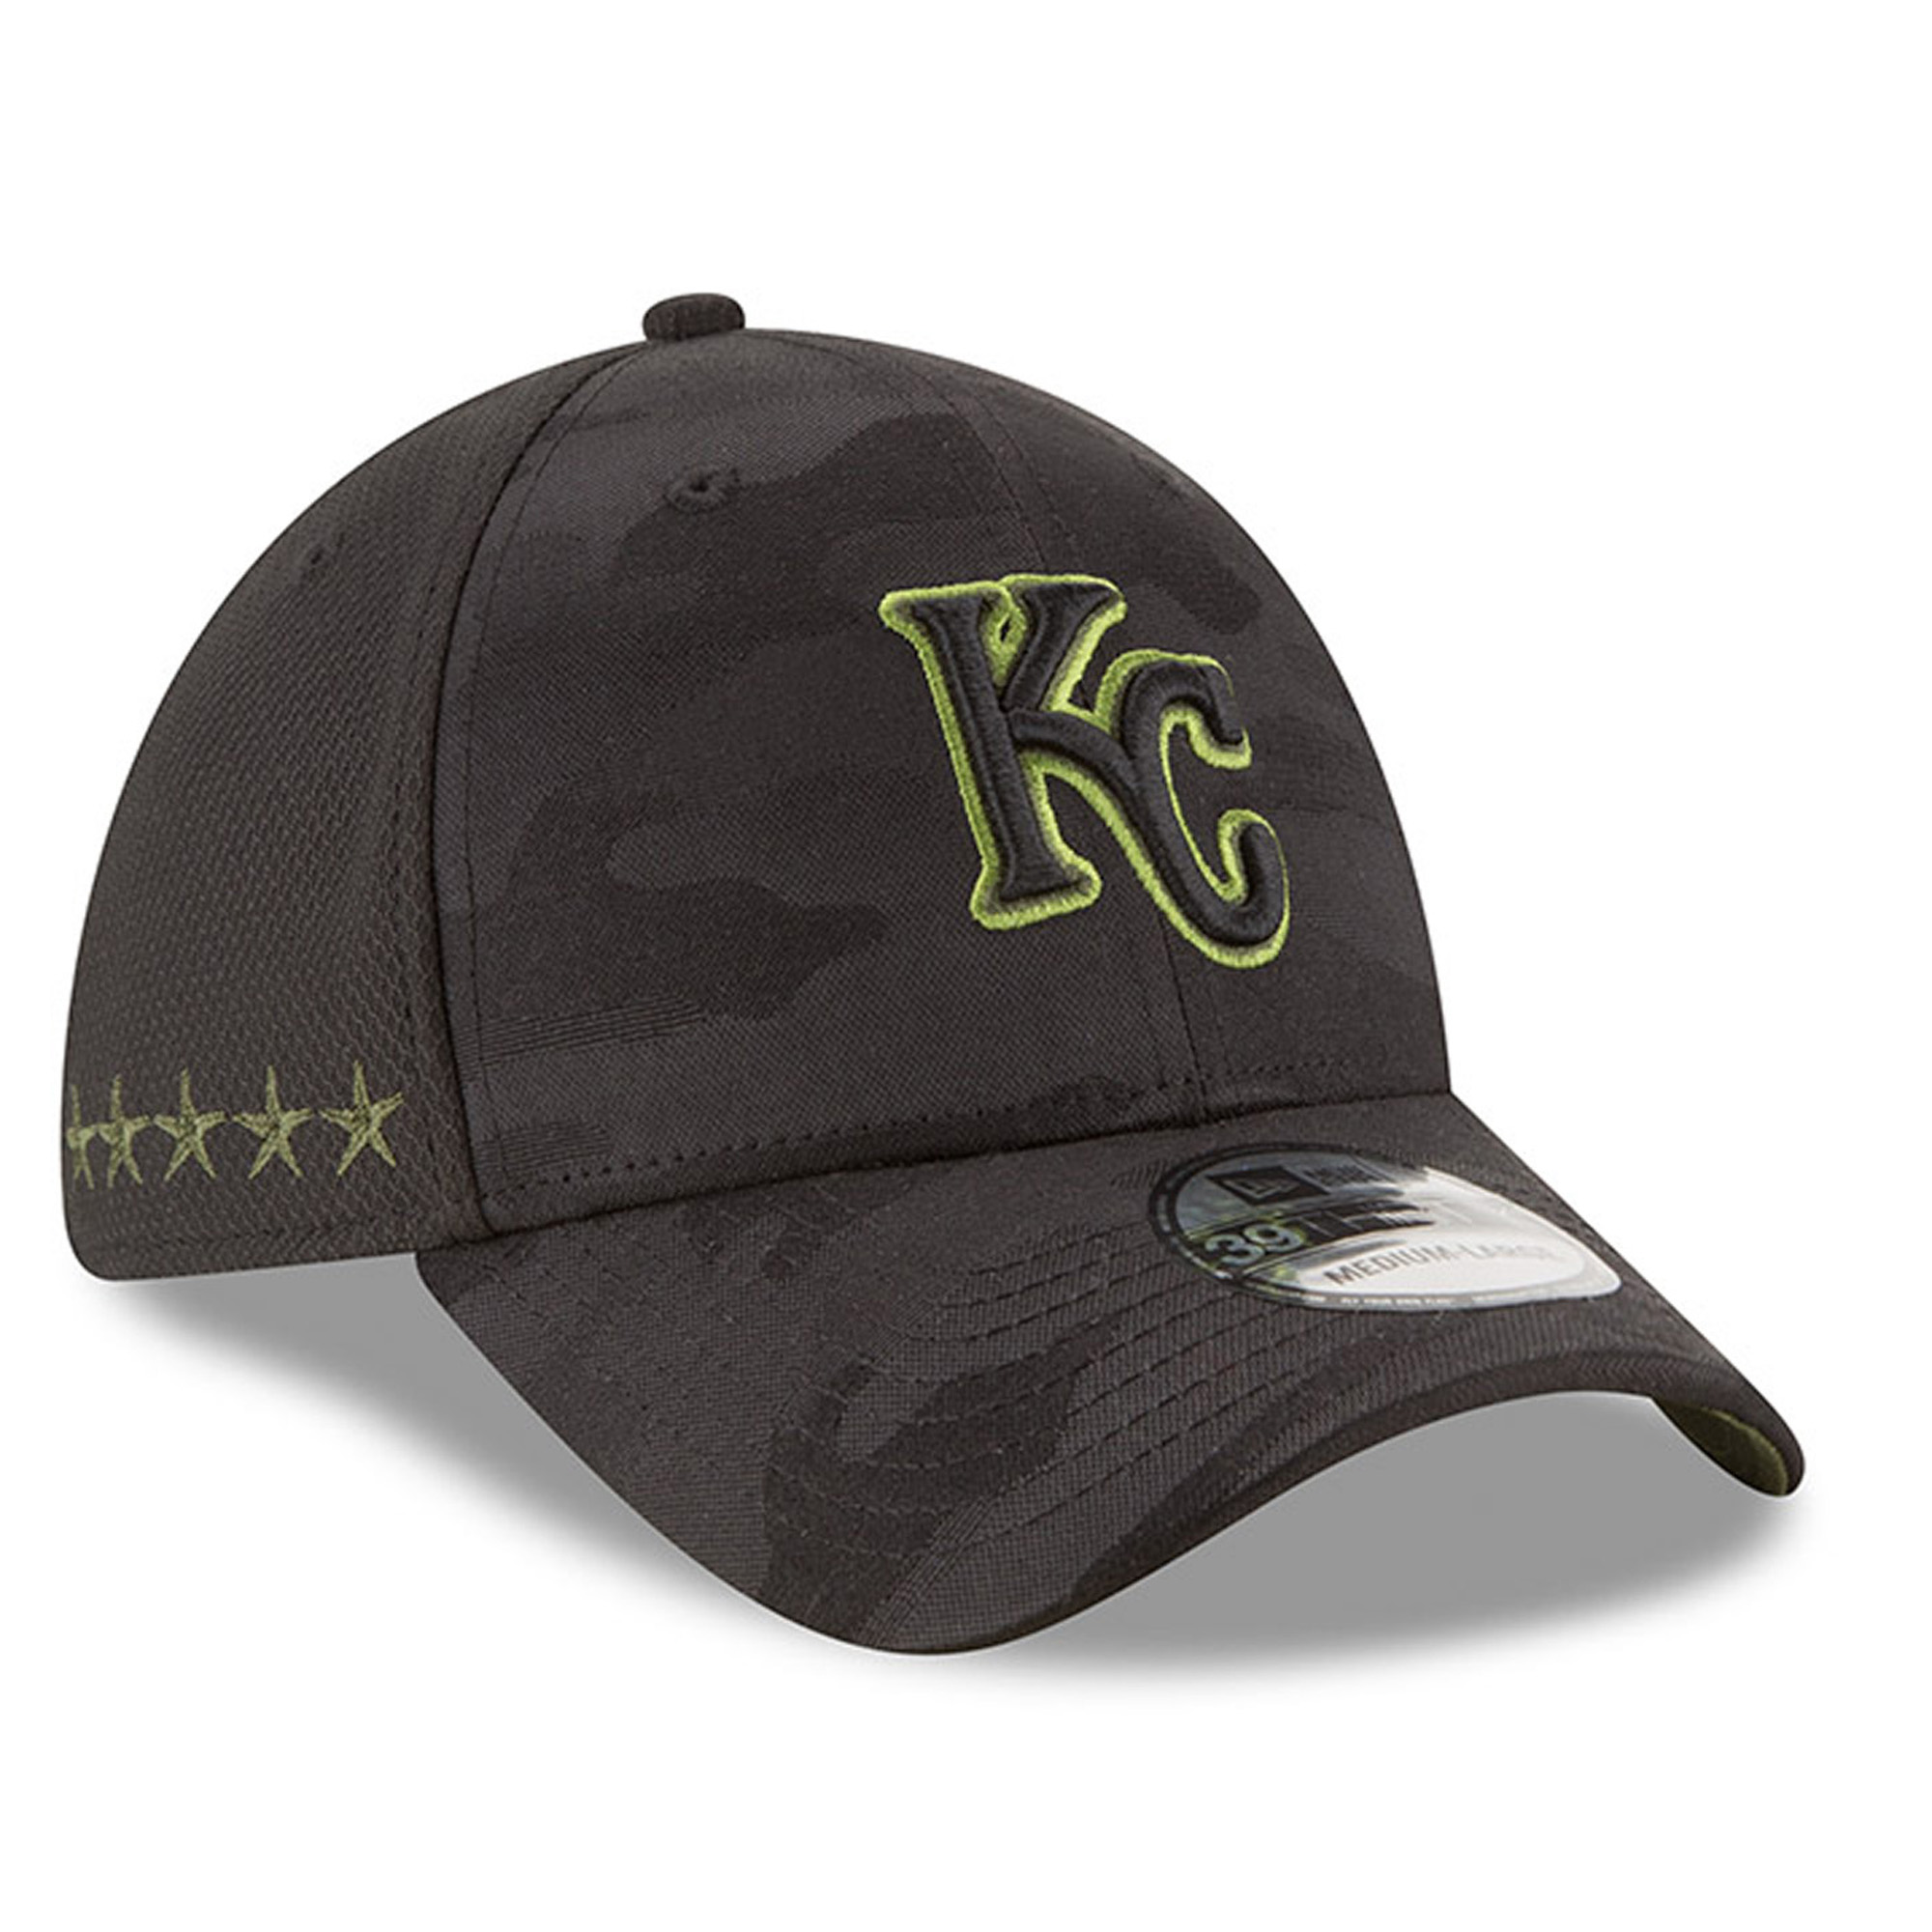 Kansas City Royals New Era 2018 Memorial Day 39THIRTY Flex Hat - Black